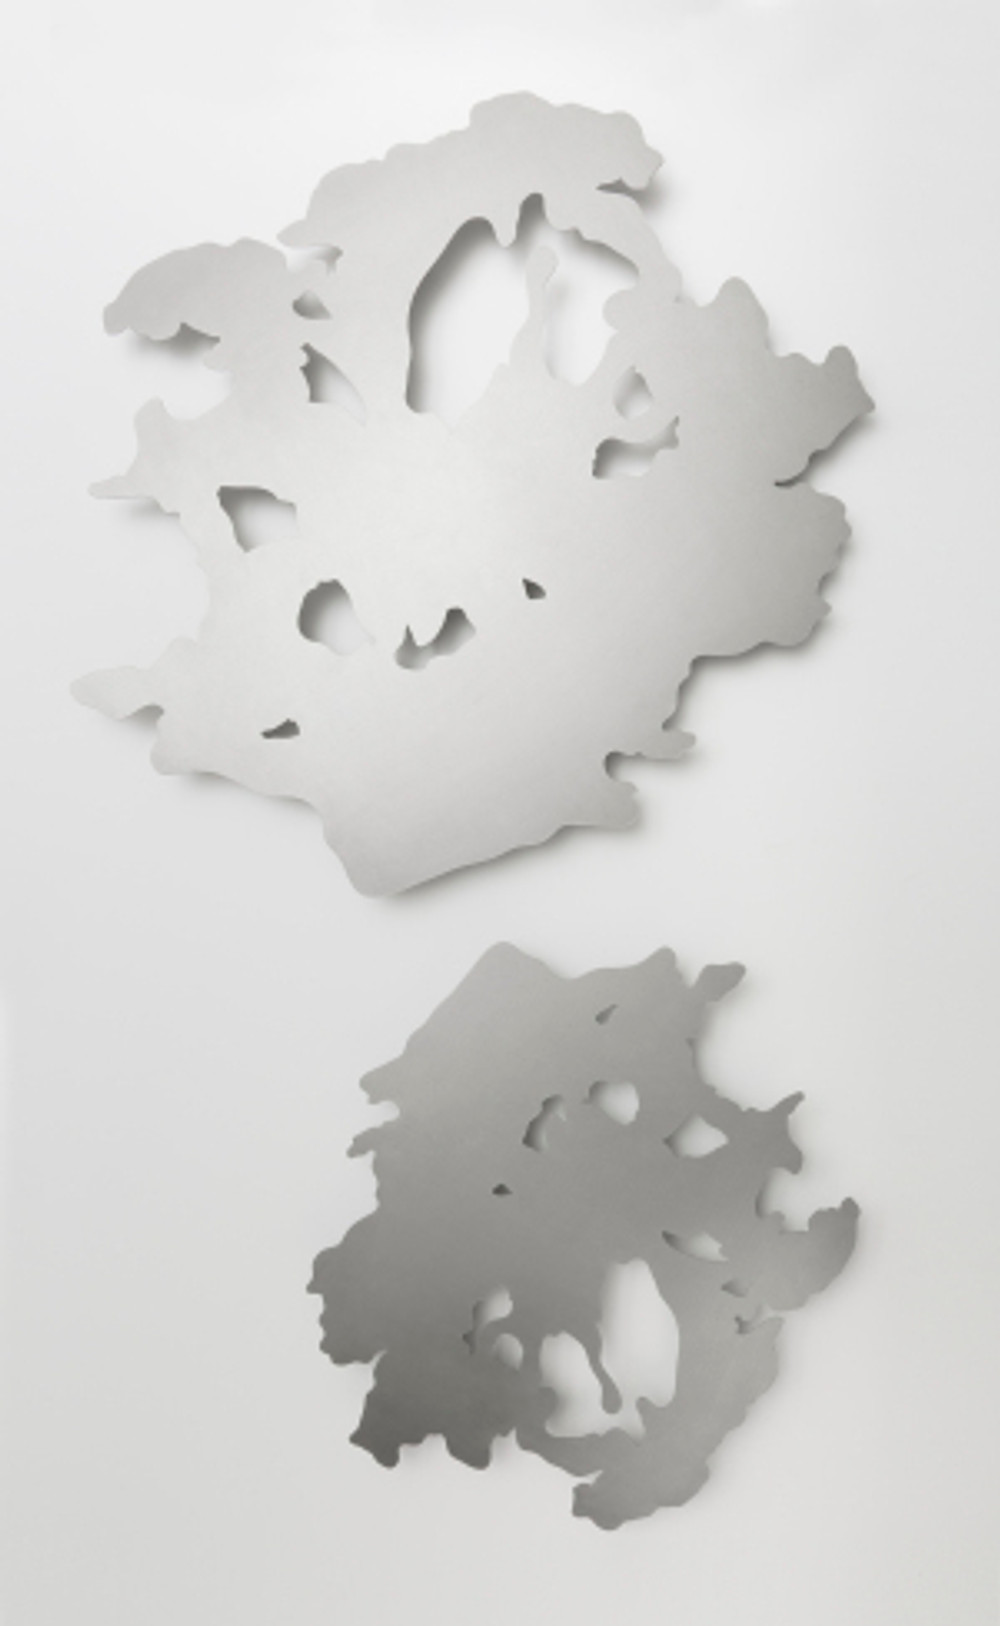 untitled, DKP metal sheet, laser cutting, dimensions variable, diptych, 2018